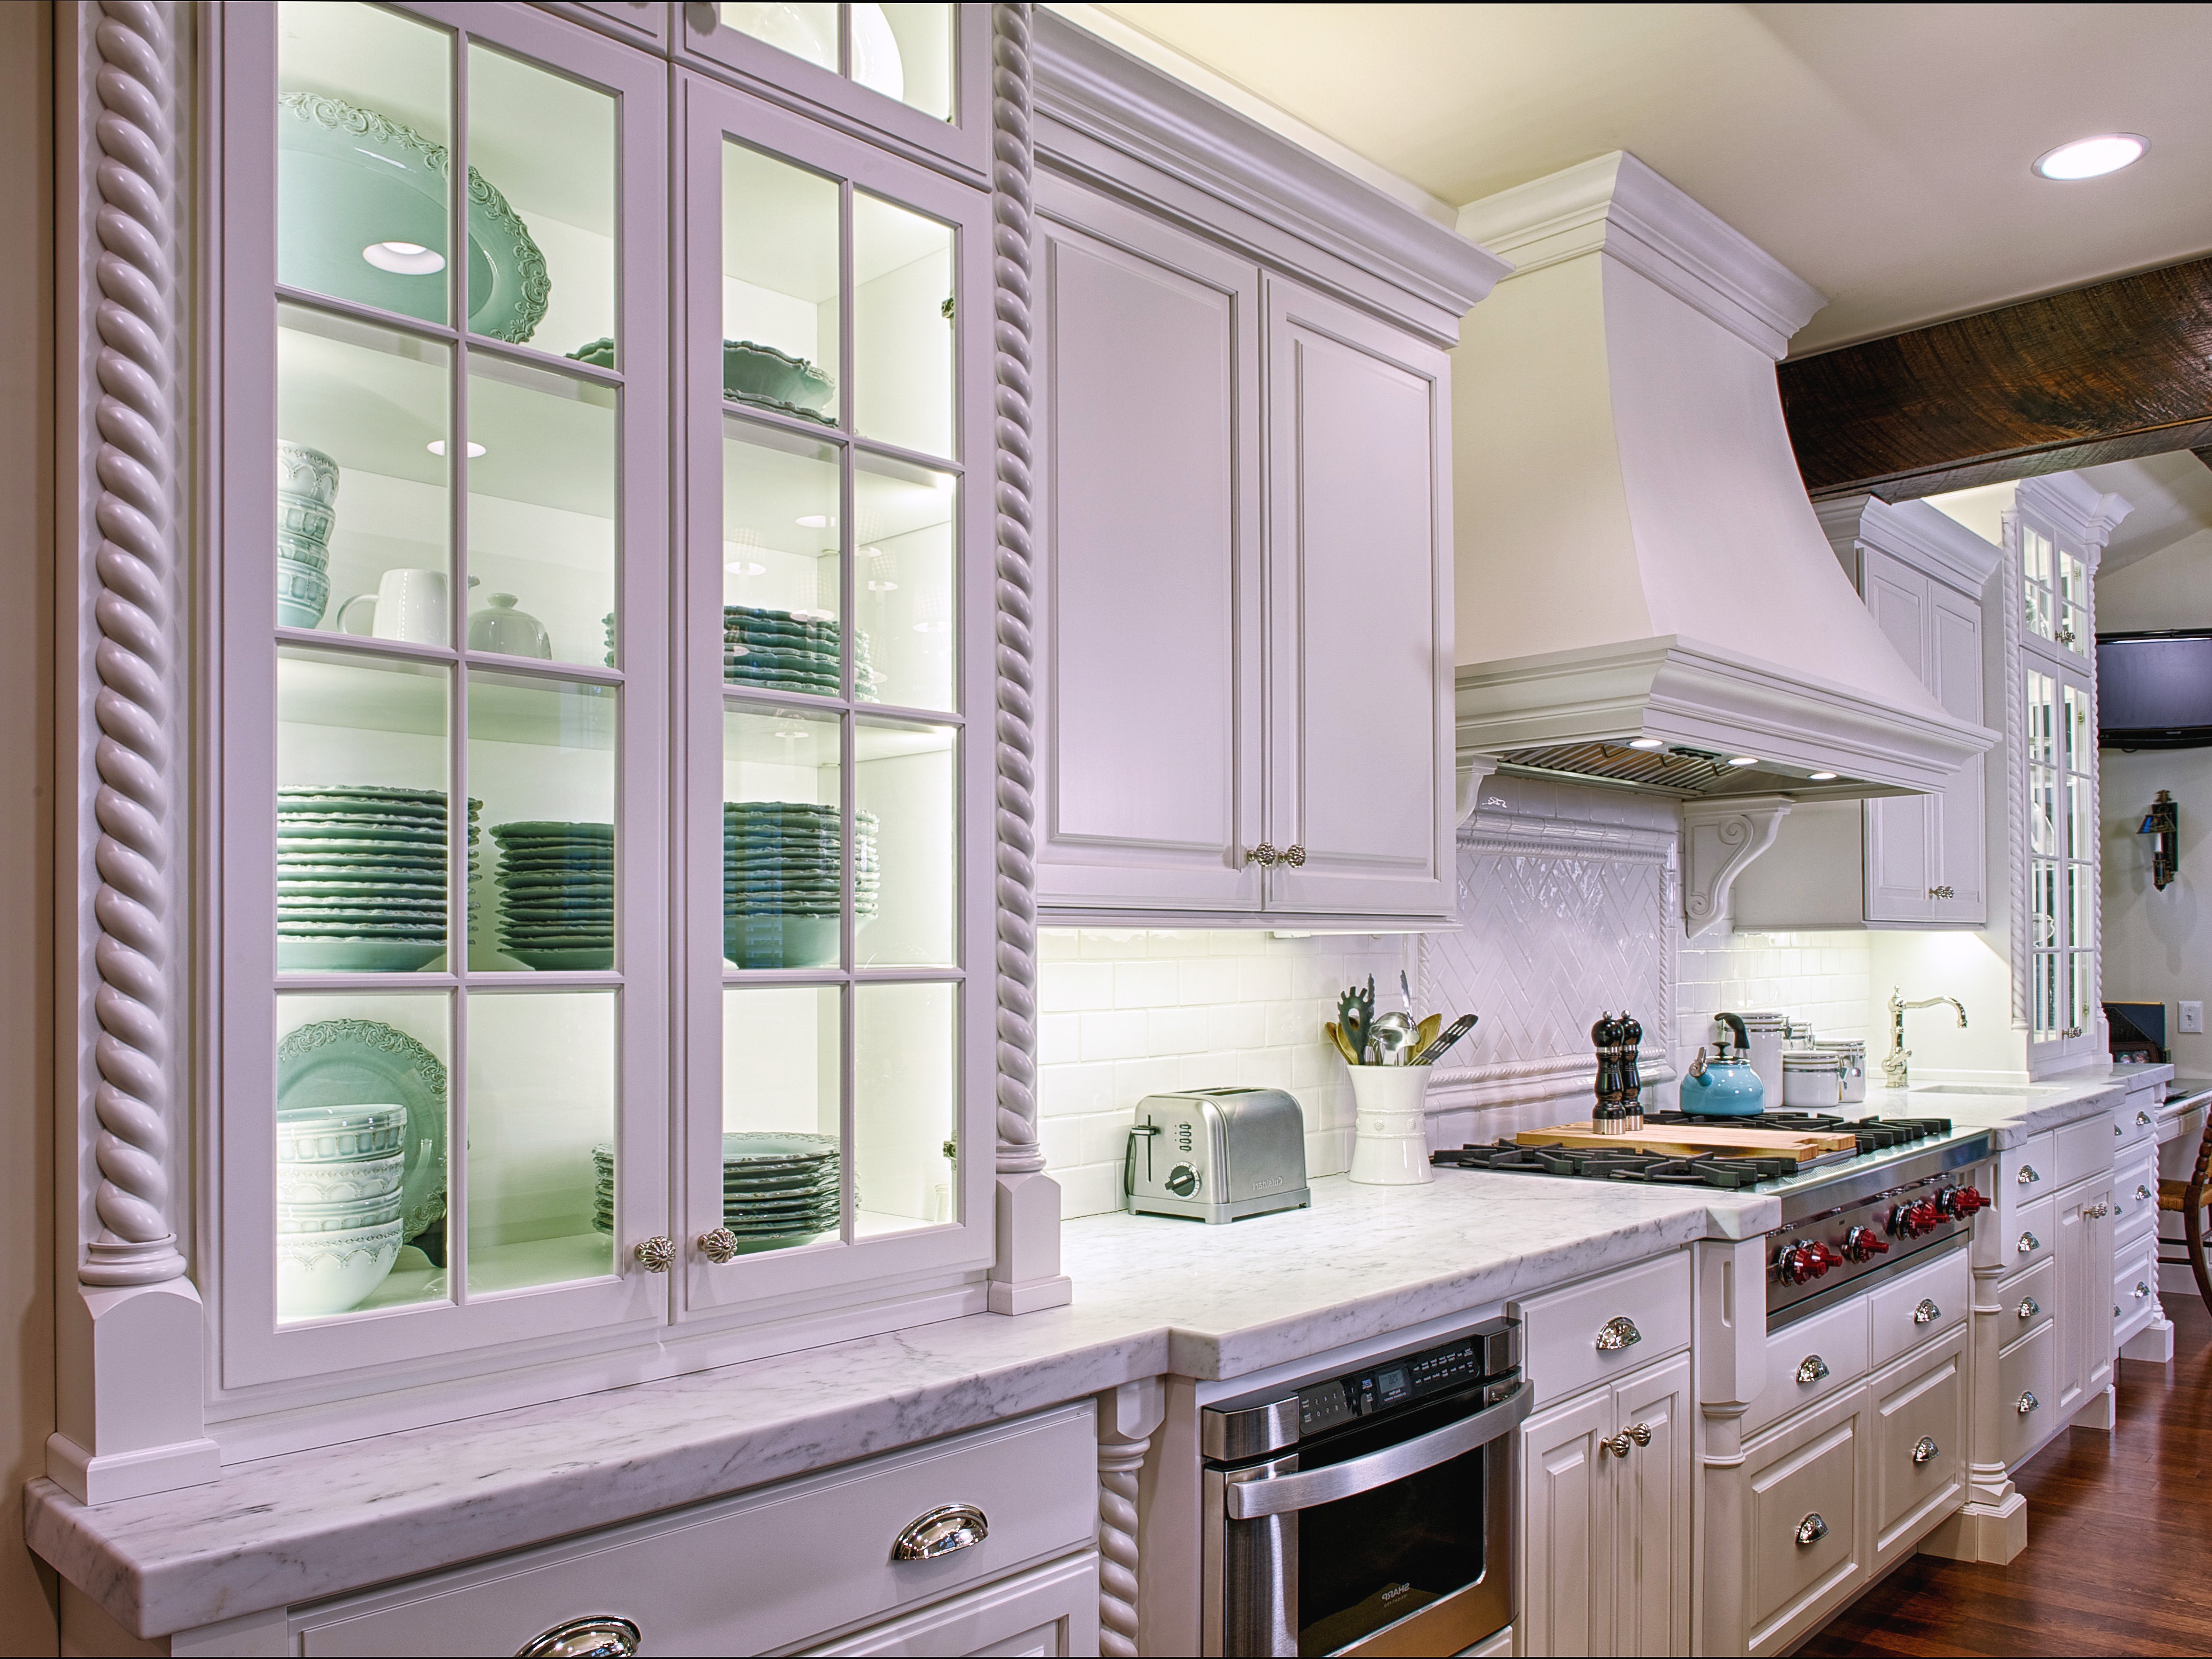 White Color For Wooden Classic Kitchen Cabinets (Image 15 of 18)